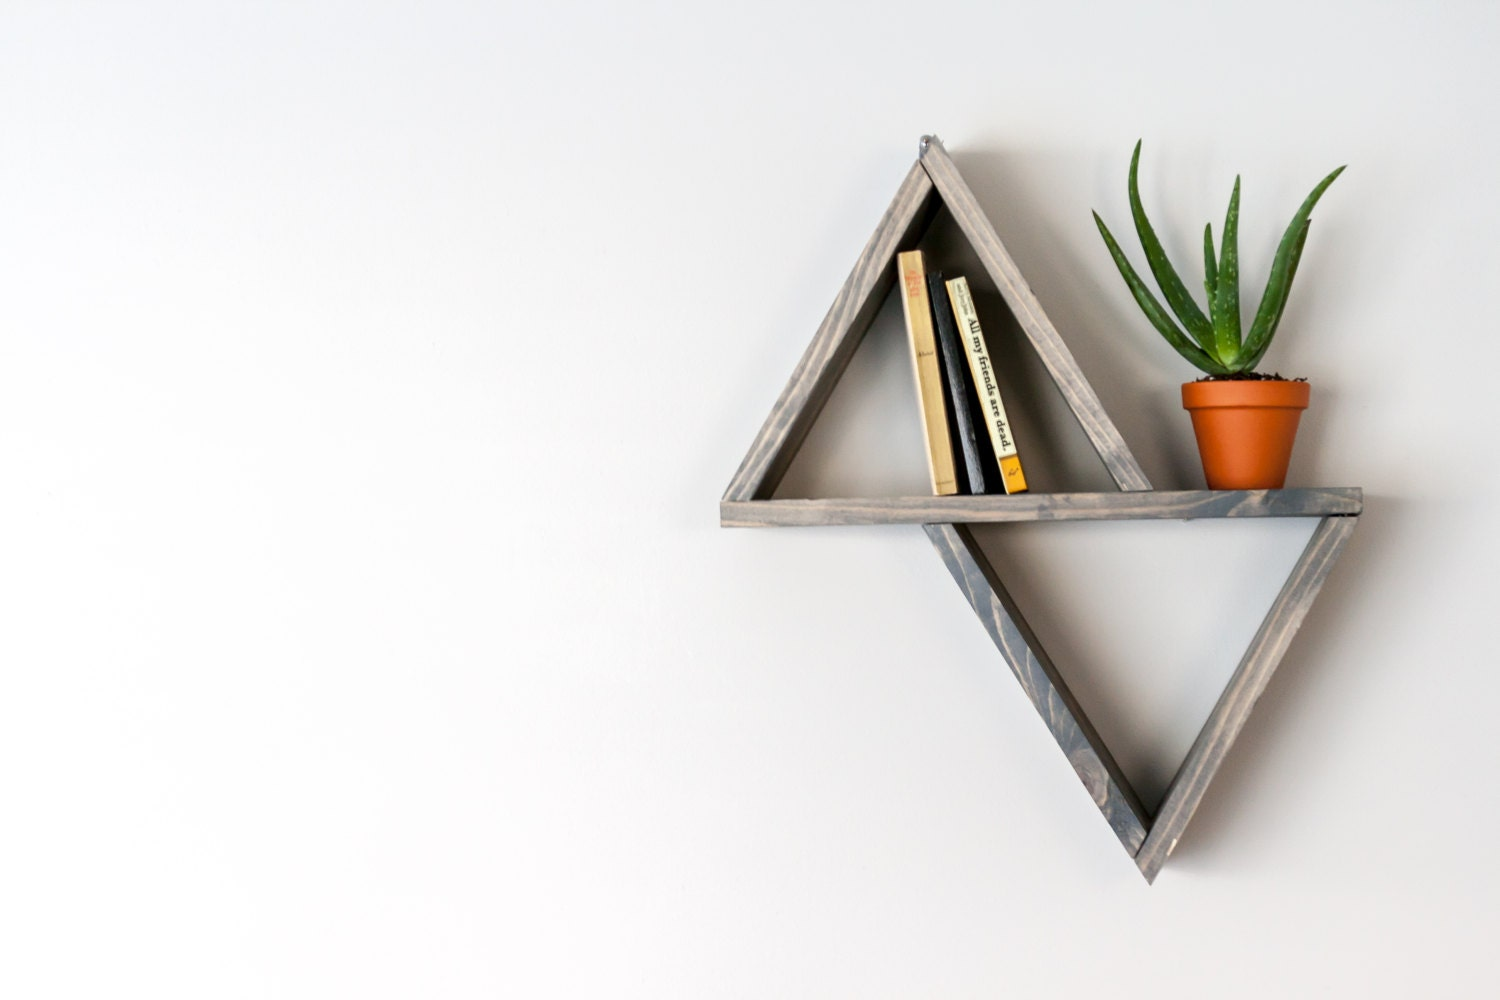 Floating shelves triangle shelves mid century modern - Triangular bookshelf ...